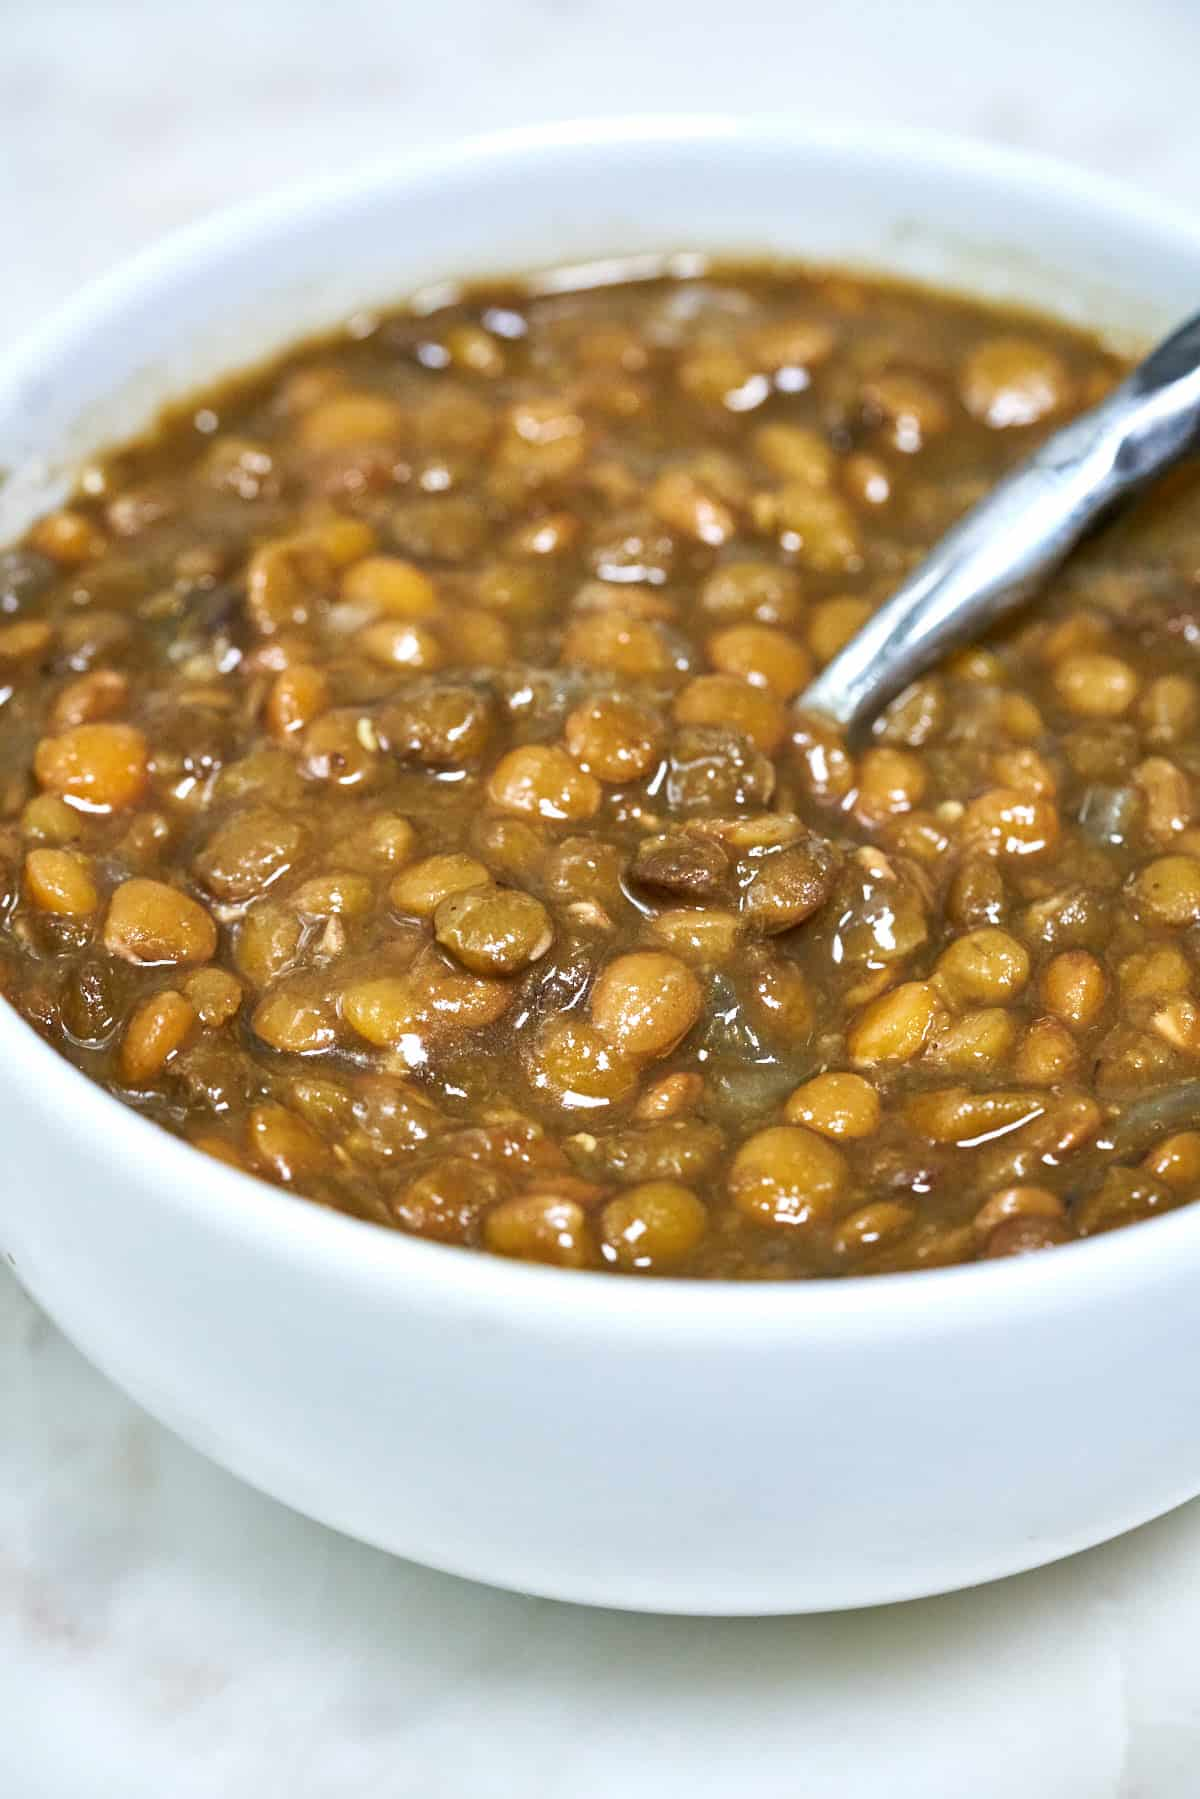 Bowl of lentils with a spoon.